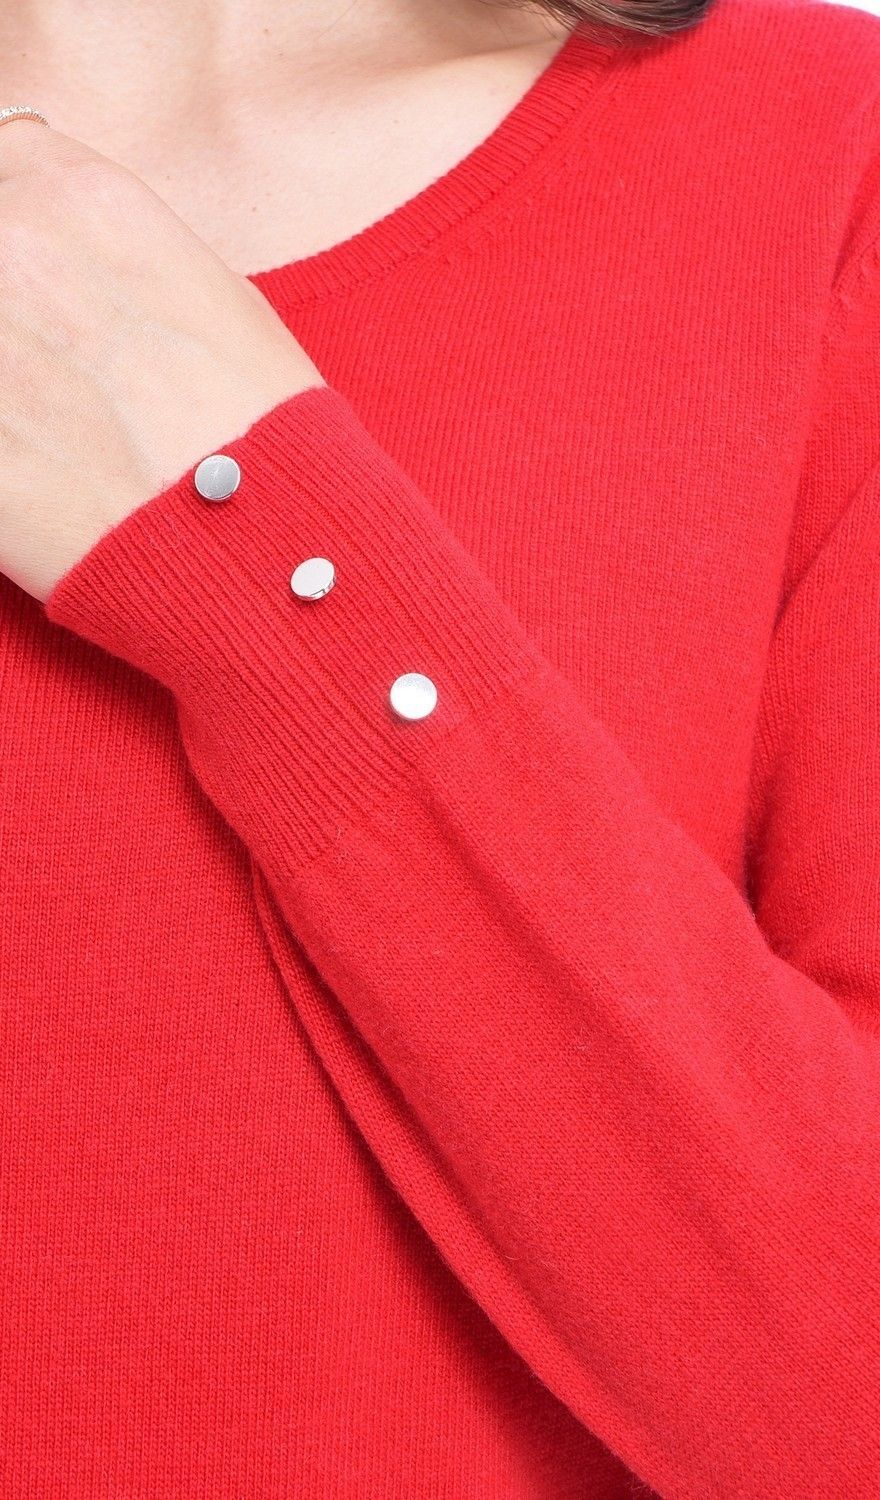 C&JO Round Neck Sweater with Buttoned Sleeves in Red